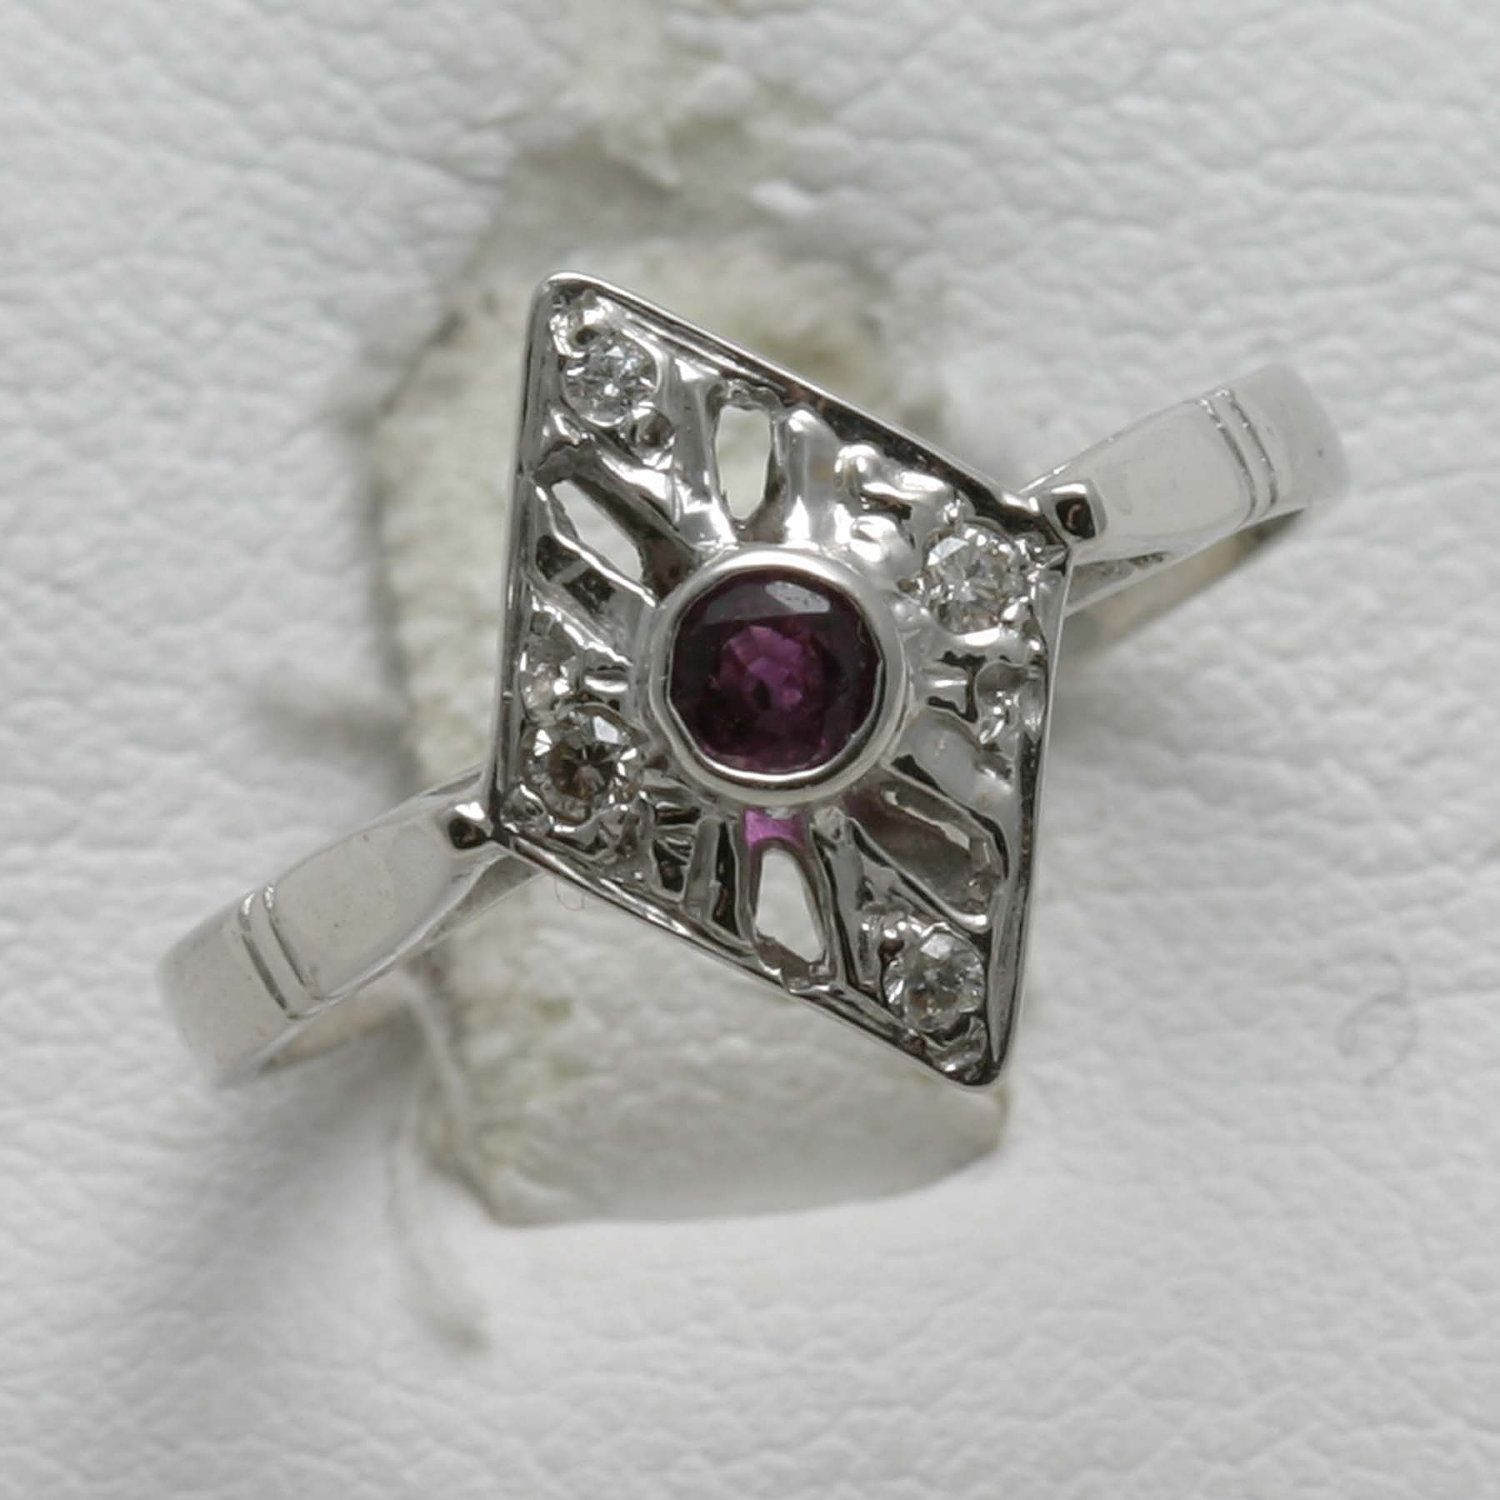 1a4c66f0a Vintage 14k white gold Diamond & Ruby Ring Victorian Reproduction red.  $194.99, via Etsy.